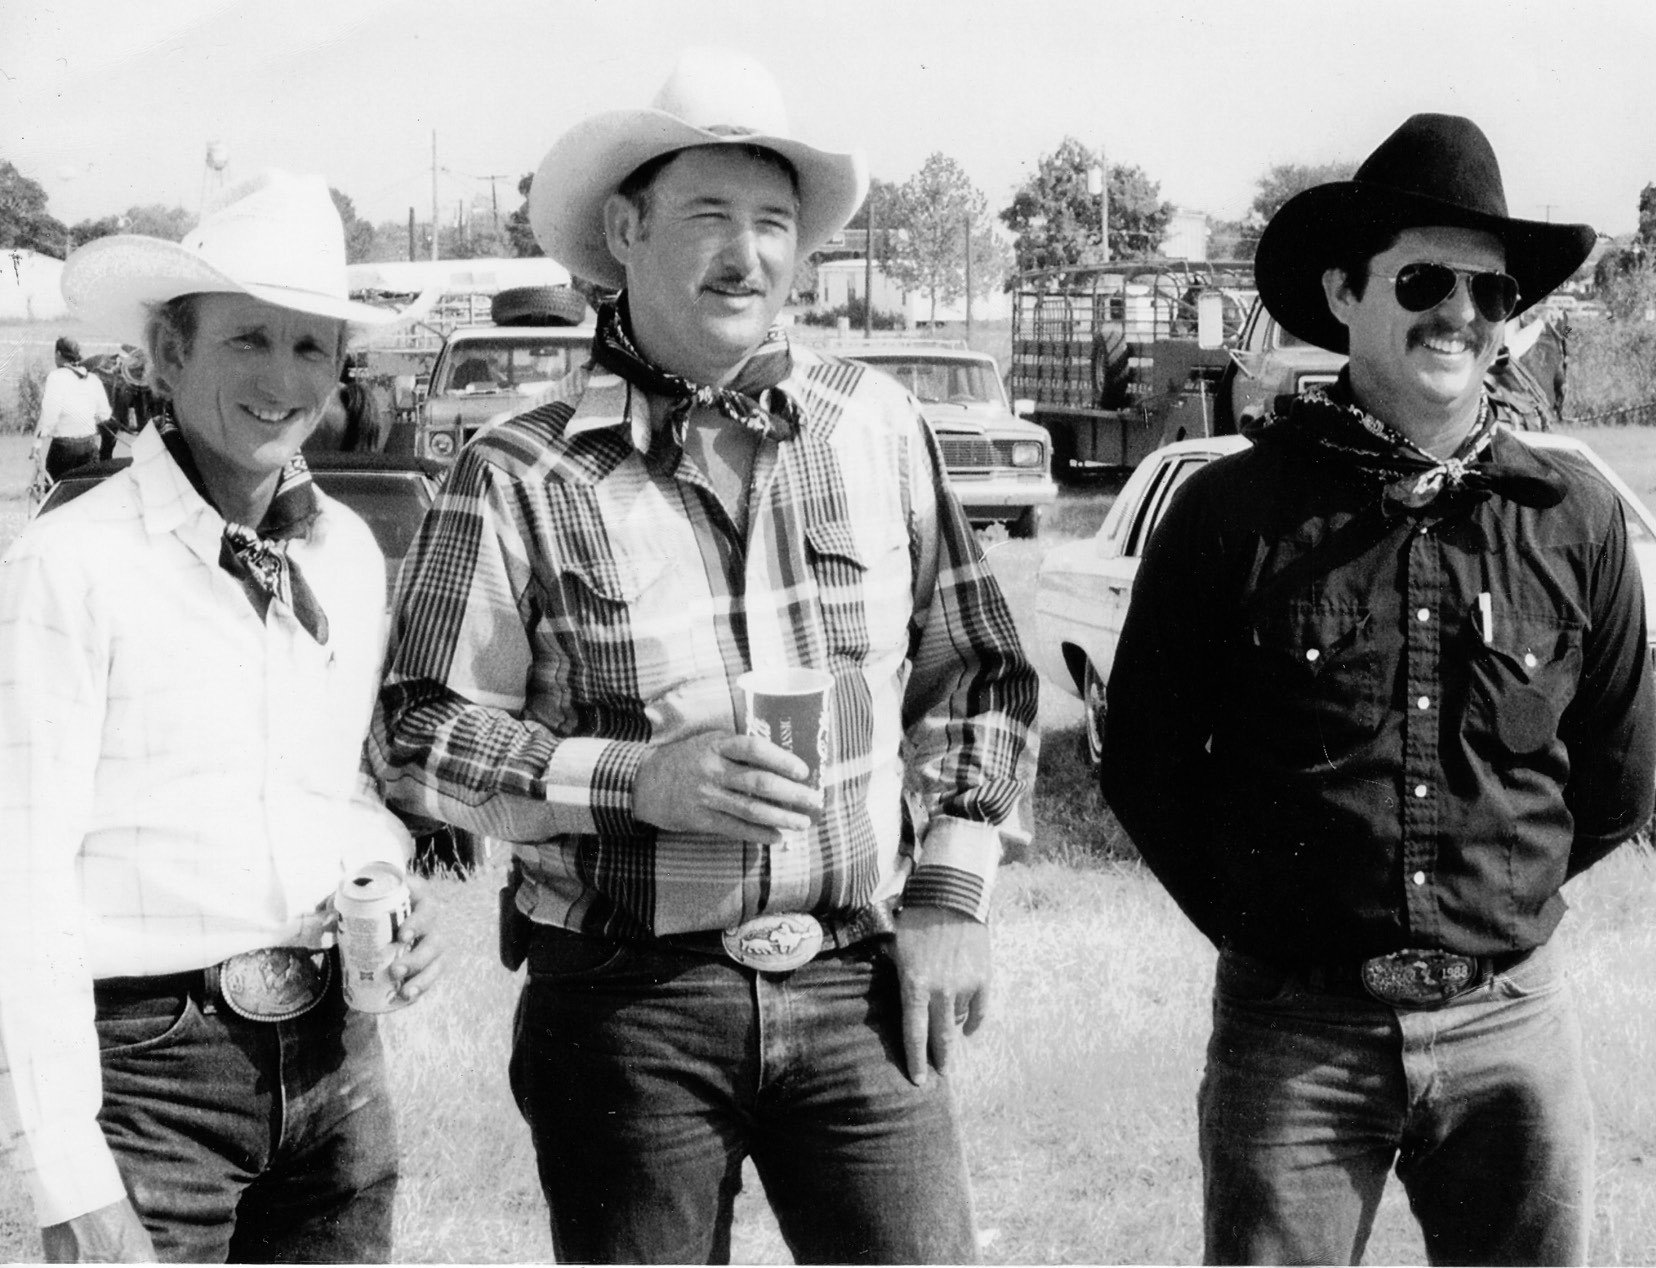 Johnny Yow, Randy Mangum and Mike Simmons doing their thing at the Poteet Balloon Fest ranch rodeo in 1993.